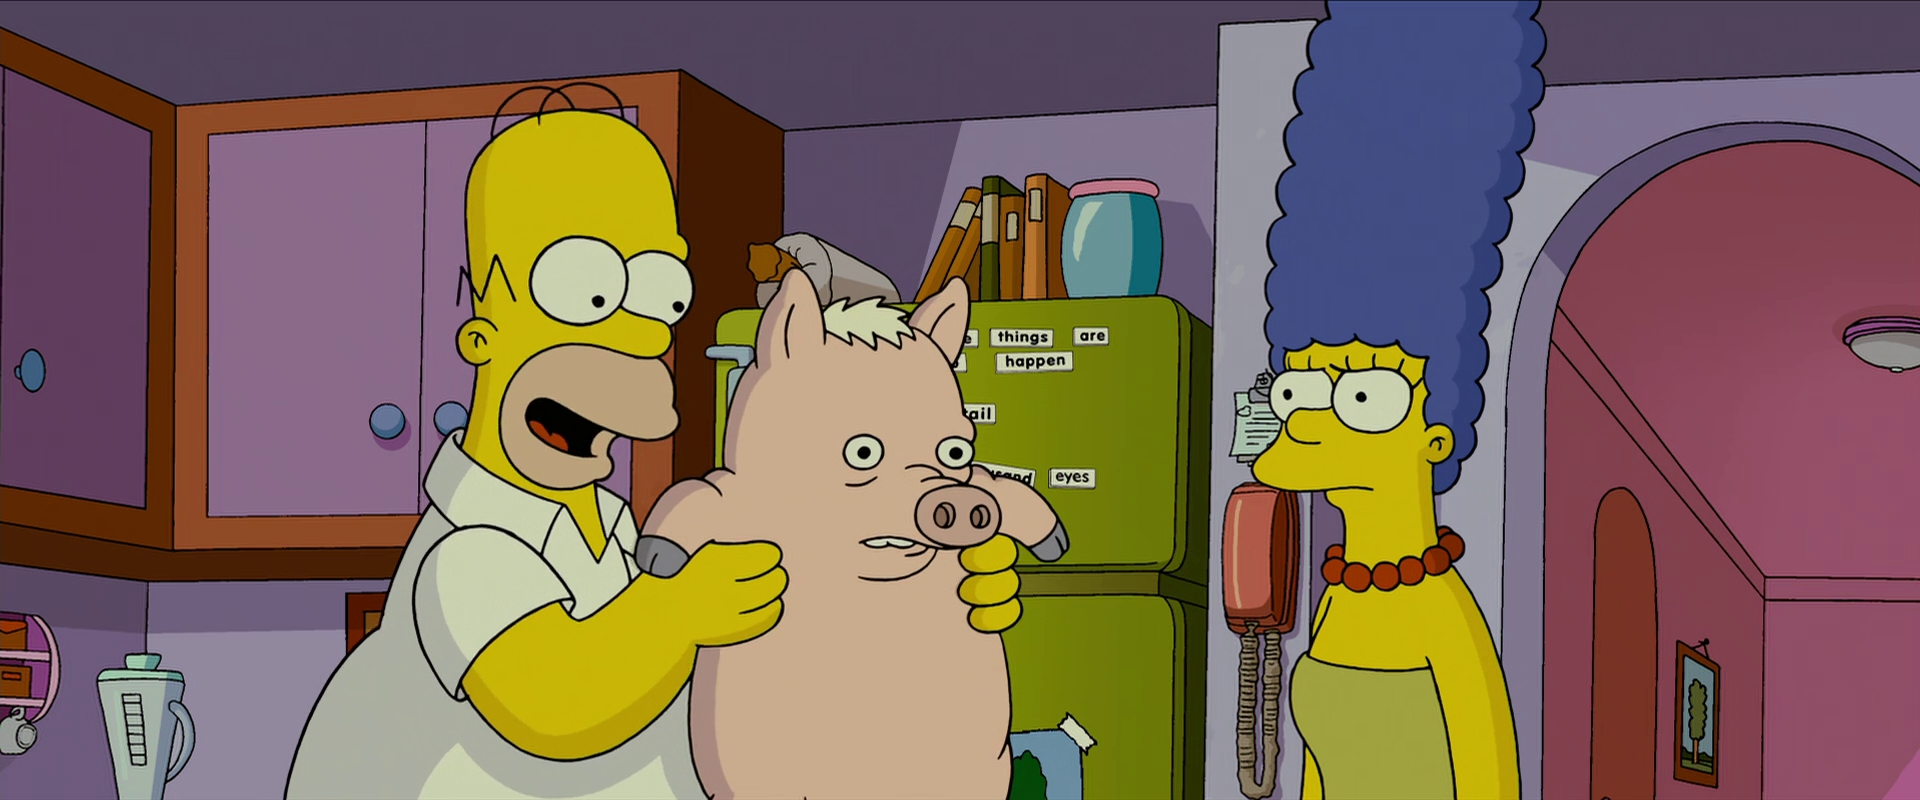 http://images.wikia.com/simpsons/images/8/8e/The_Simpsons_Movie_34.JPG